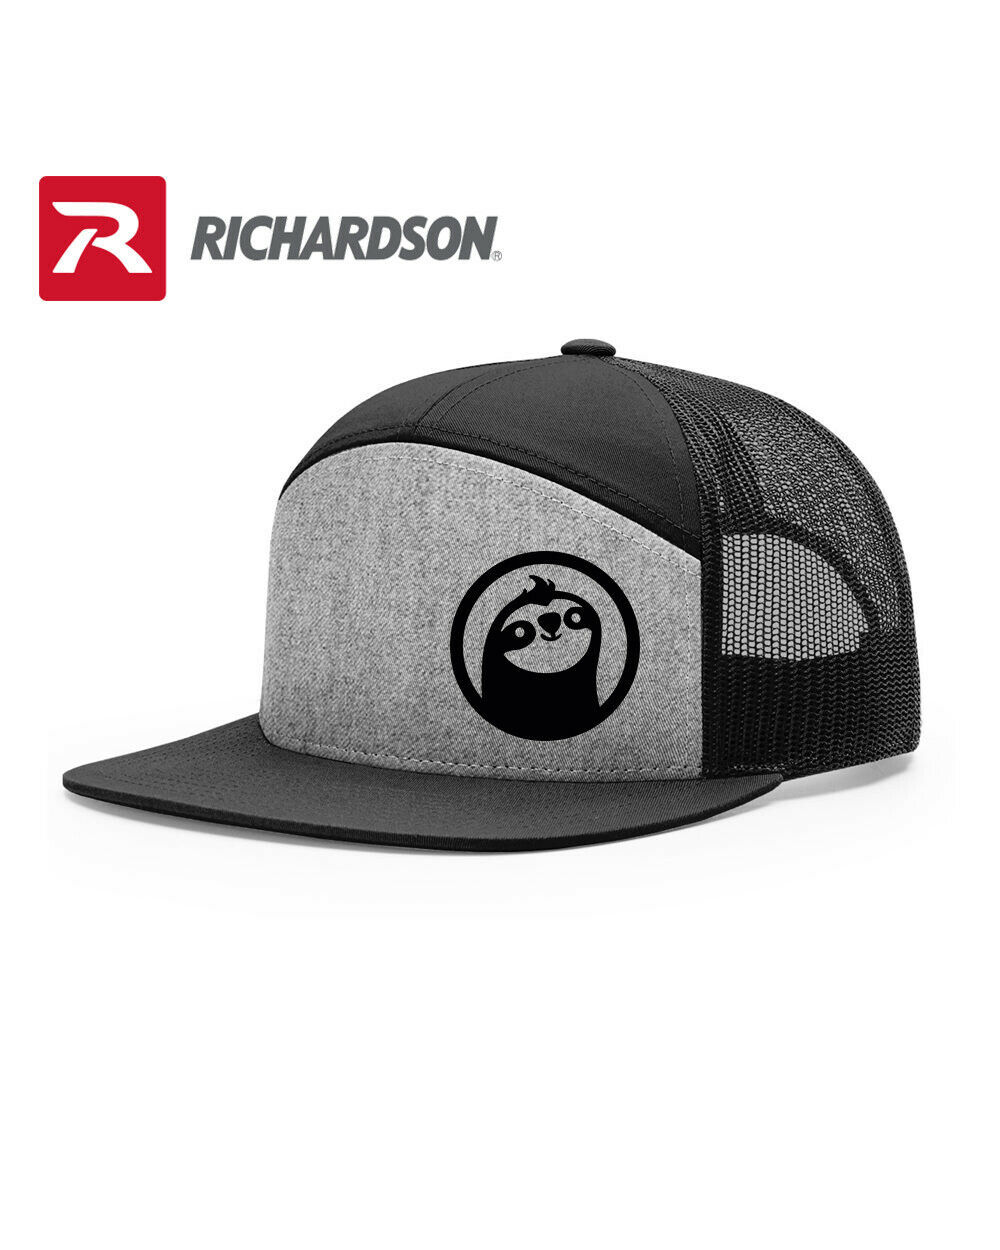 Primary image for SLOTH RICHARDSON FLAT BILL SNAPBACK HAT * FREE SHIPPING in BOX*